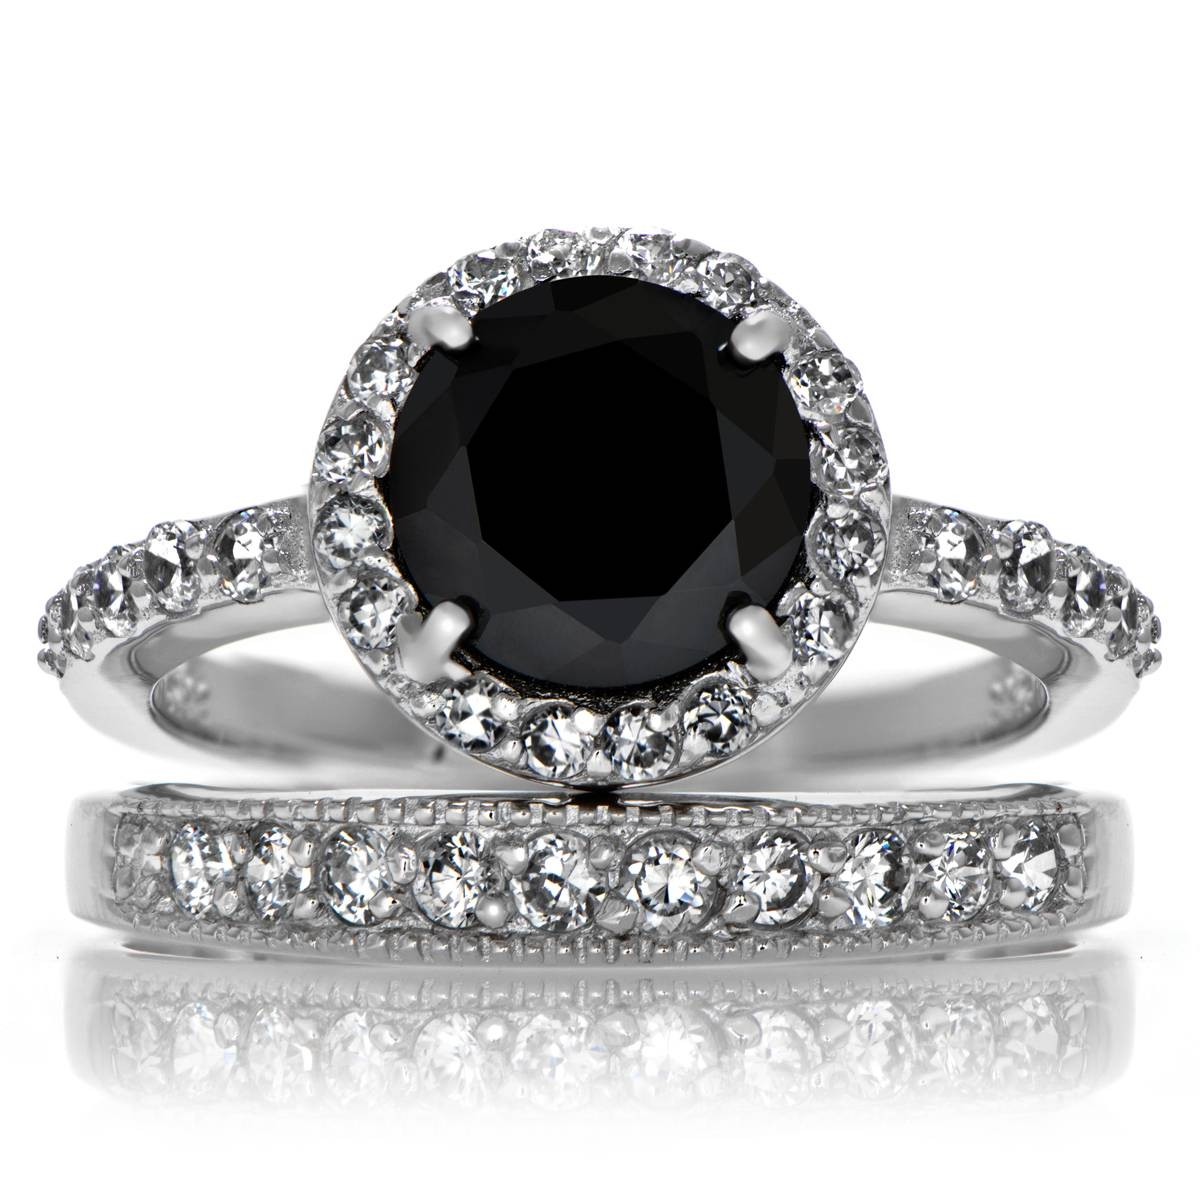 Carrie's Black Cz Ring Set With Regard To Cz Diamond Wedding Rings (View 8 of 15)